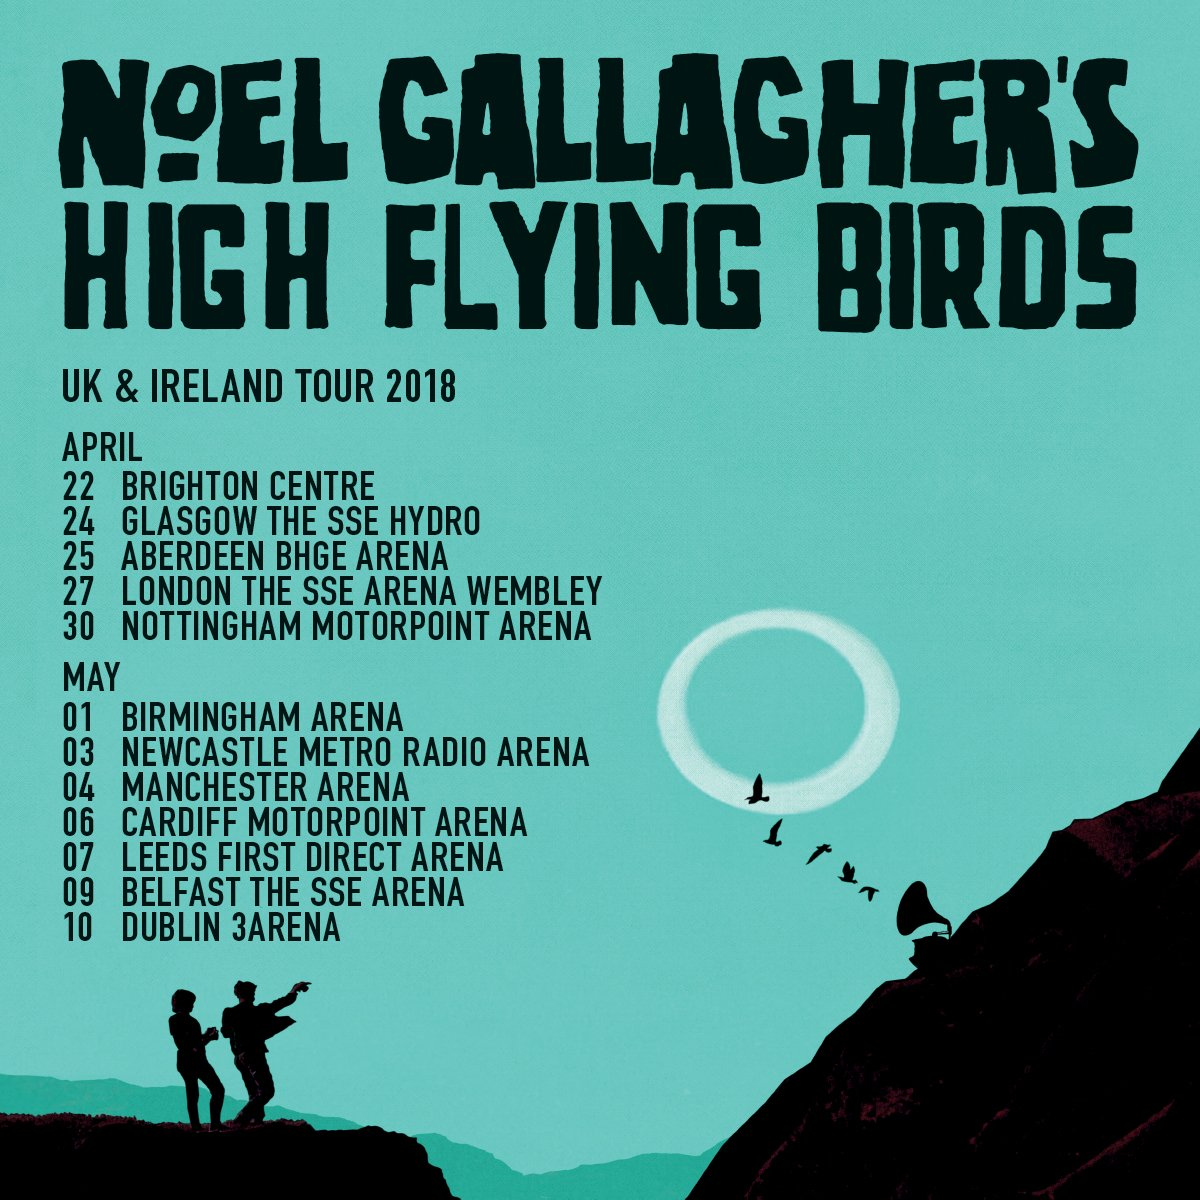 noel gallagher 2018 tour dates Noel Gallagher on Twitter: